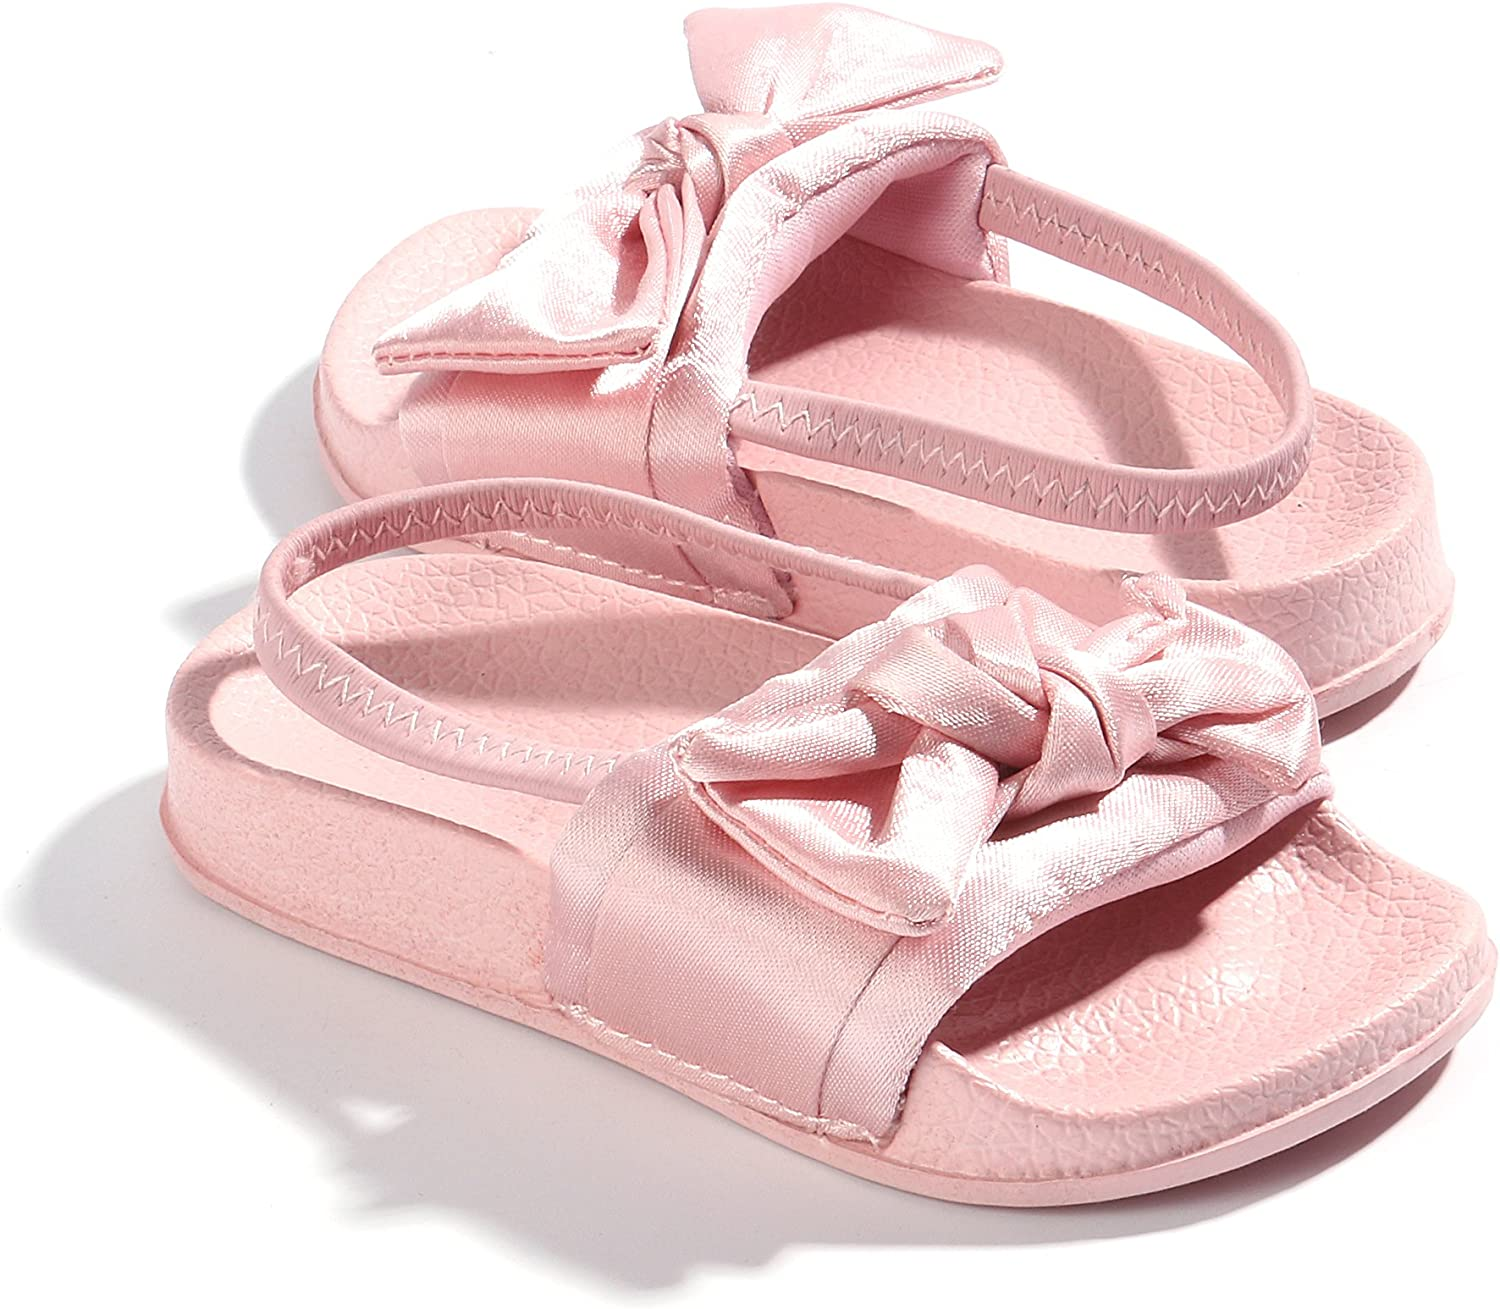 Faux Fur Slides with Elastic Back Strap Flats Shoes for Kids FITORY Girls Sandals Toddler